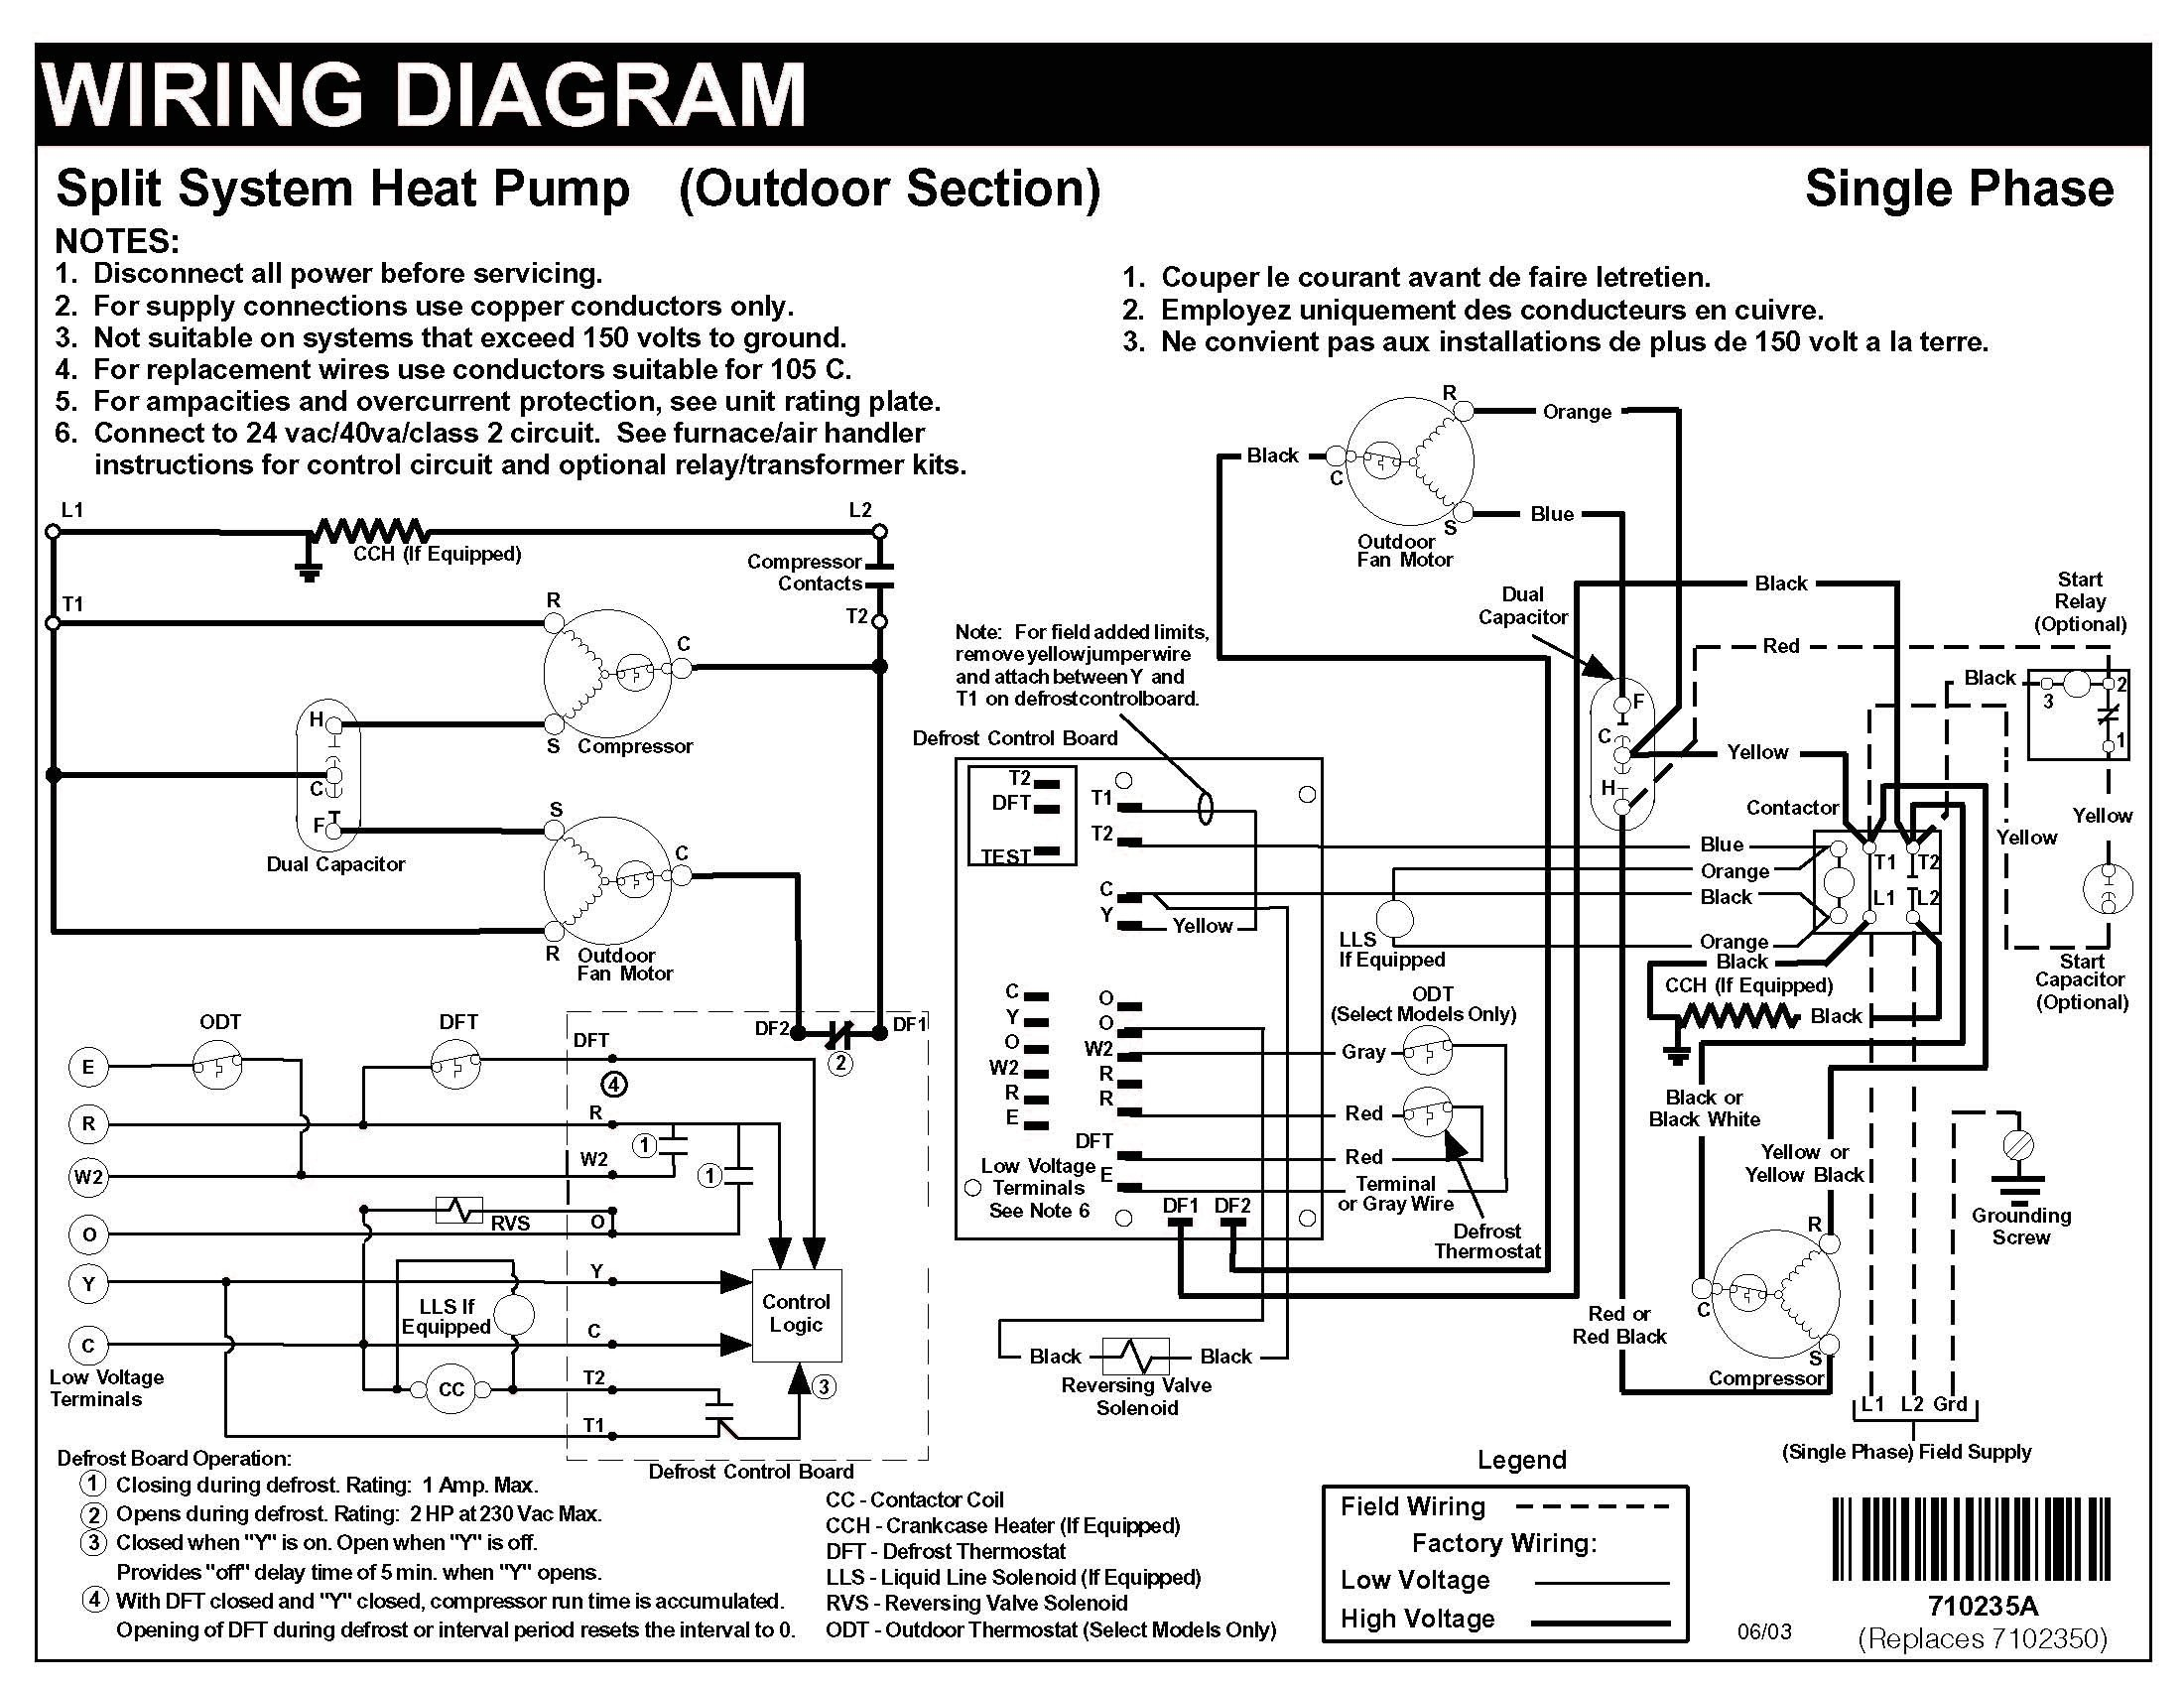 Luxaire Electric Furnace Wiring Diagram New Payne Heat Pump Wiring Diagram Schematic Diy Wiring Diagrams •